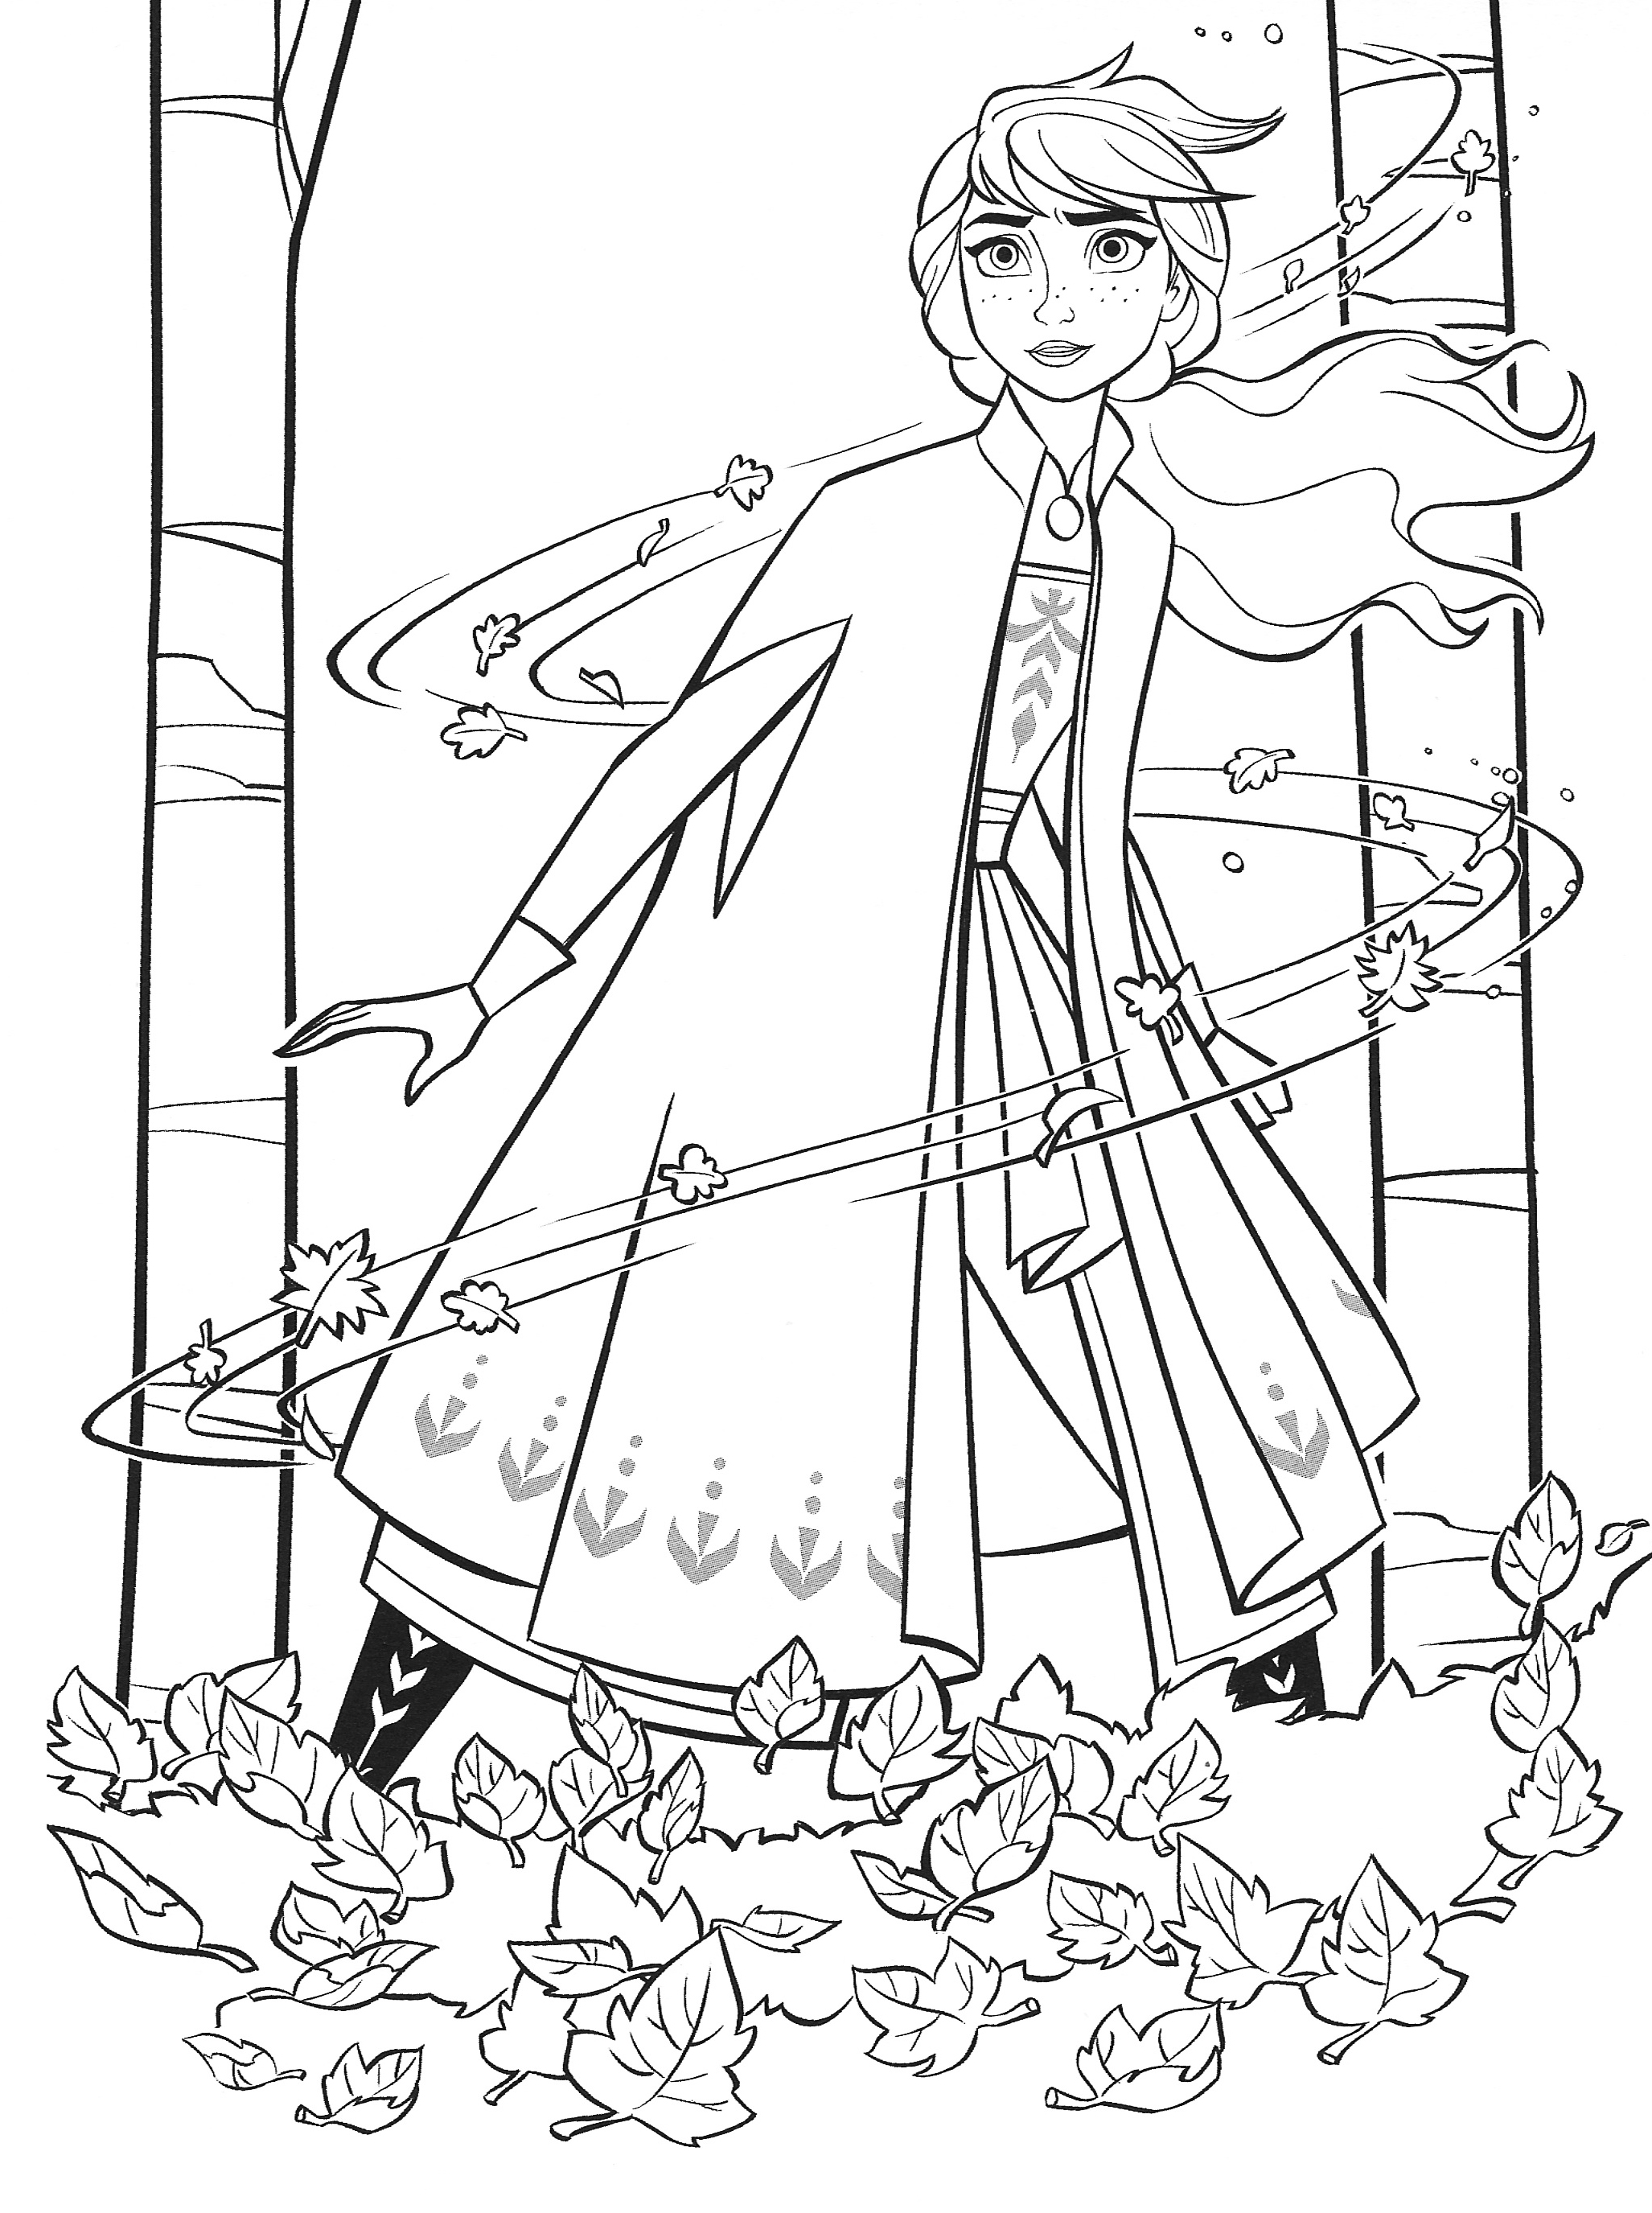 New Frozen 2 Coloring Pages With Anna Youloveit Com